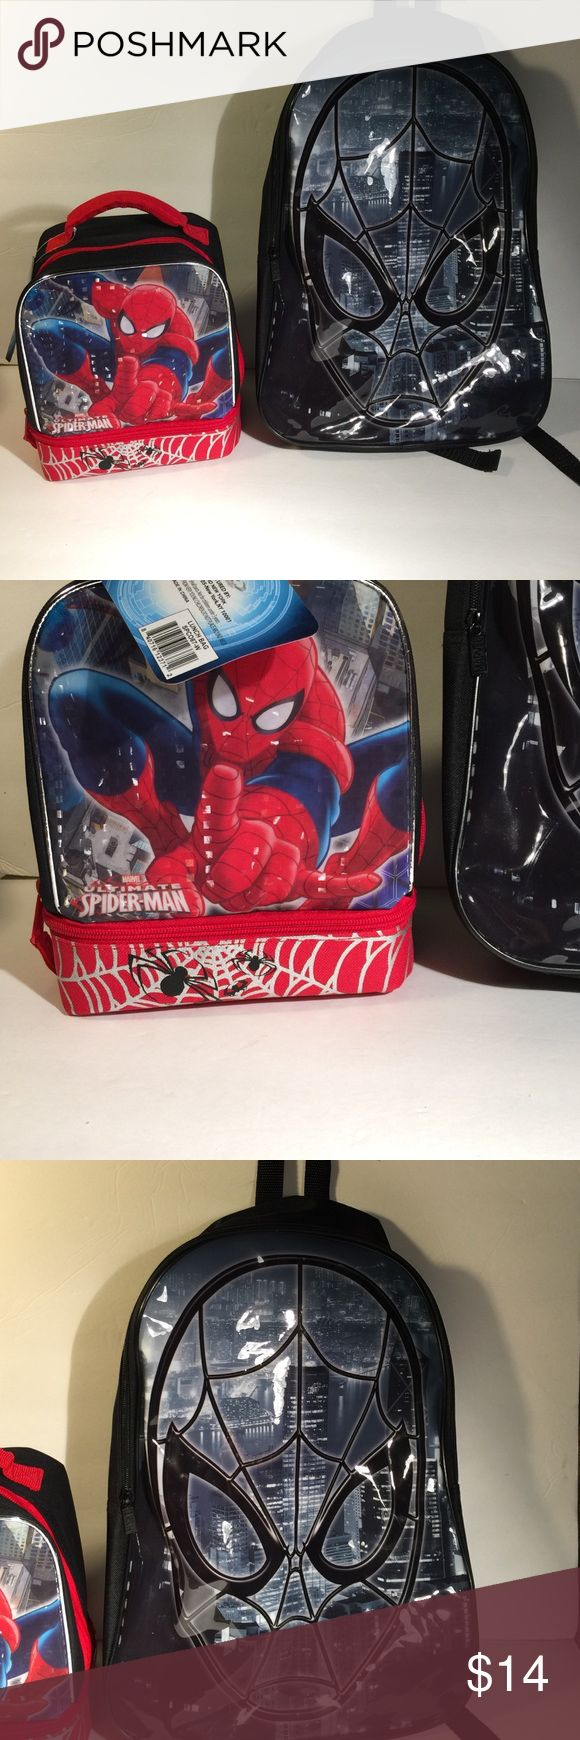 Spider-Man backpack and lunch bag Spiderman backpack was only used for one day. Spiderman lunchbox never used still has tags. Comes from a smoke free home, please ask any questions I respond quickly. Accessories